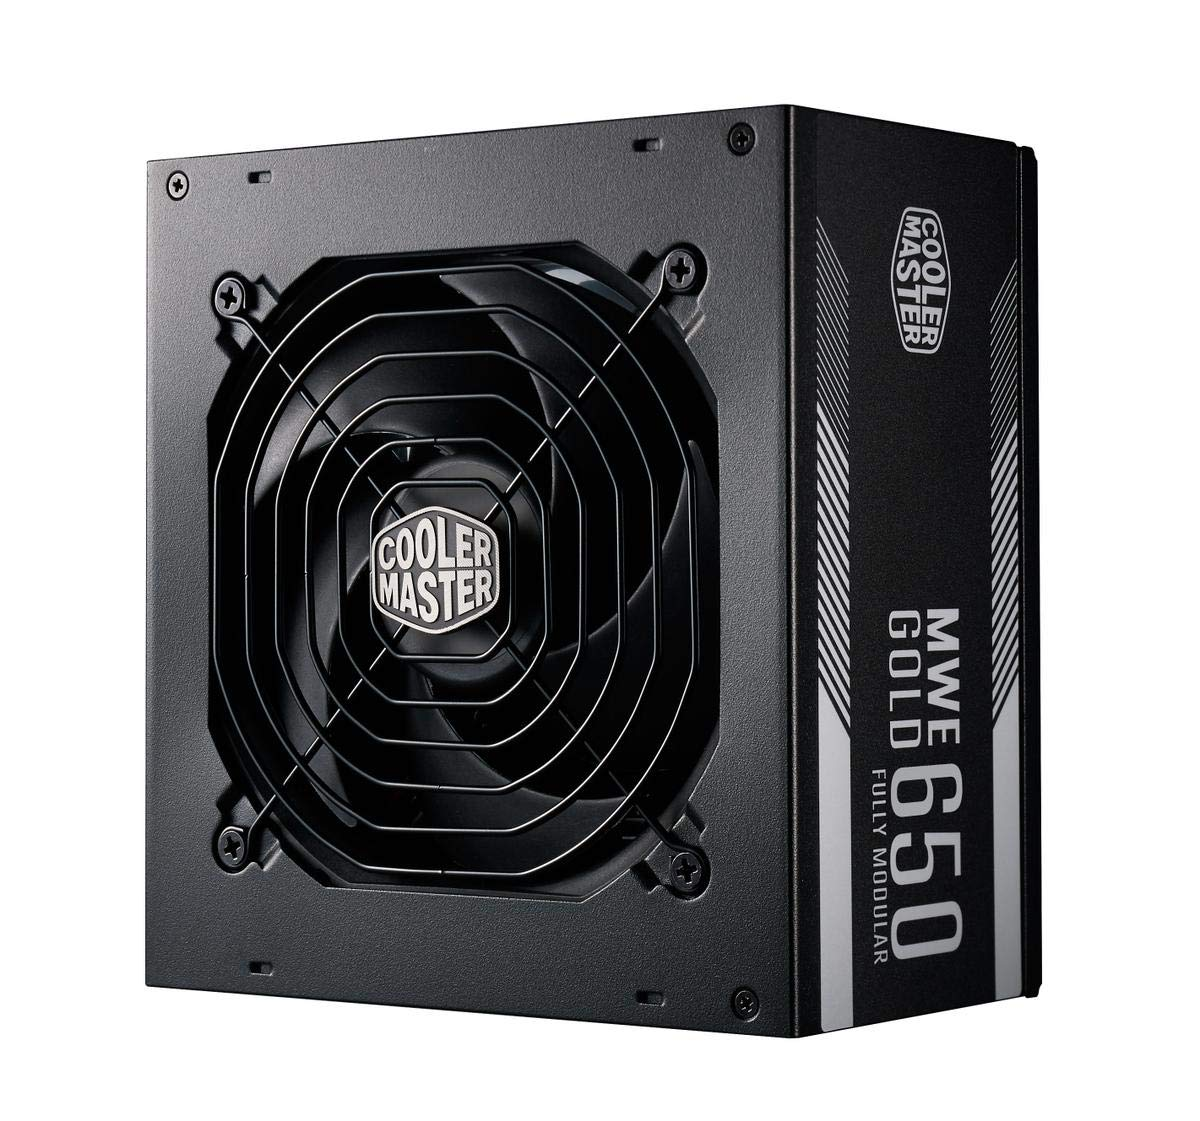 Cooler Master MPY-6501-AFAAG-US MWE 650 Gold Full Modular, 80+ Gold Certified 650W Power Supply, 5 Year Warranty by Cooler Master (Image #9)